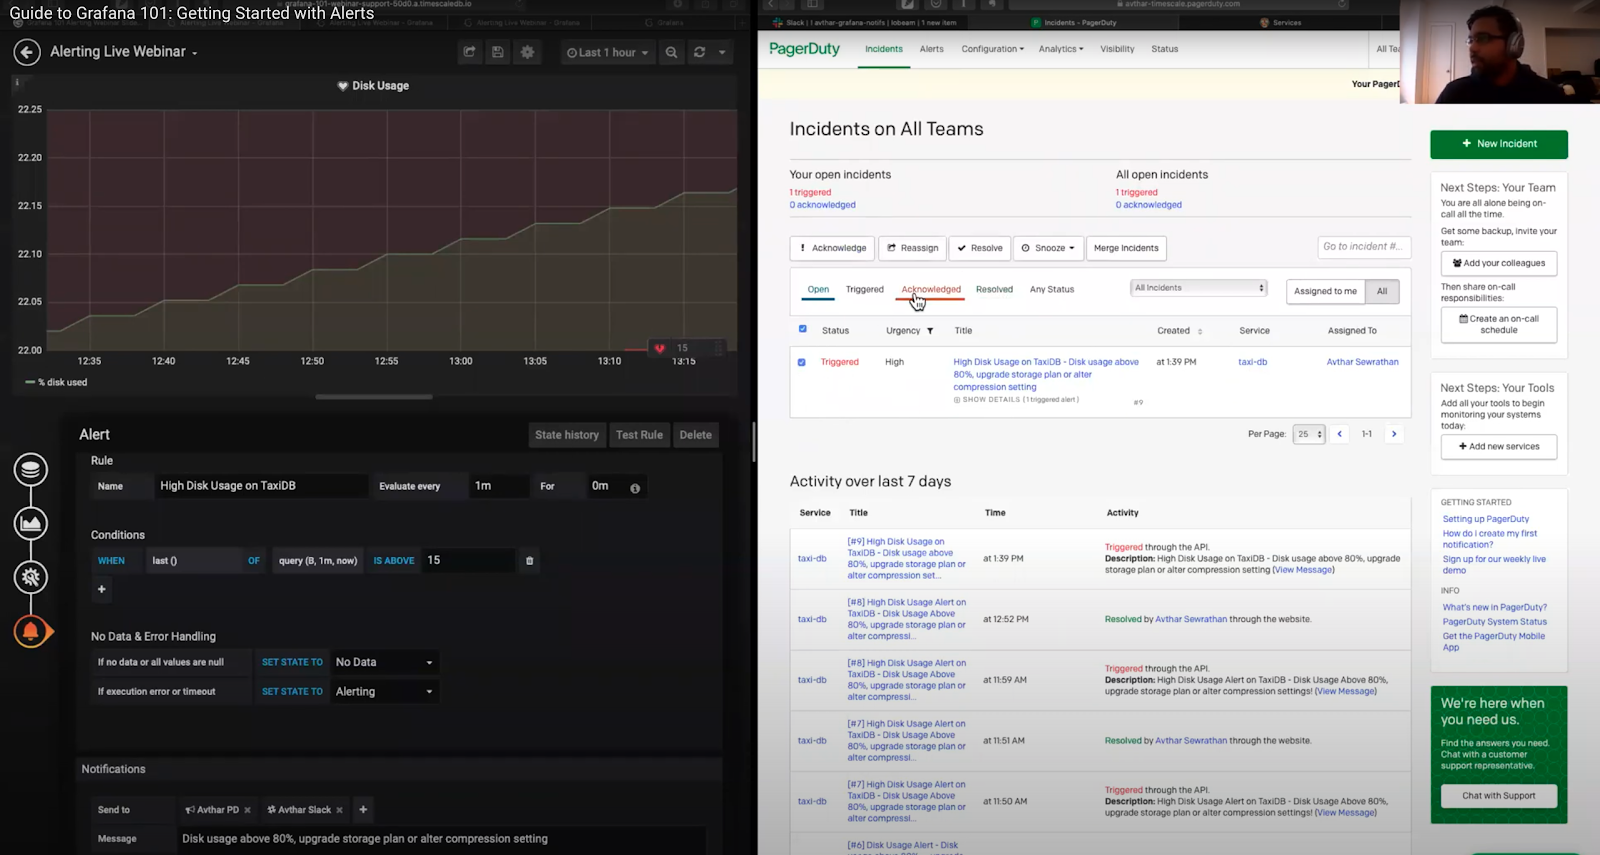 Grafana dashboard and PagerDuty incident screen side by side, showing an alert from Grafana sent to PagerDuty